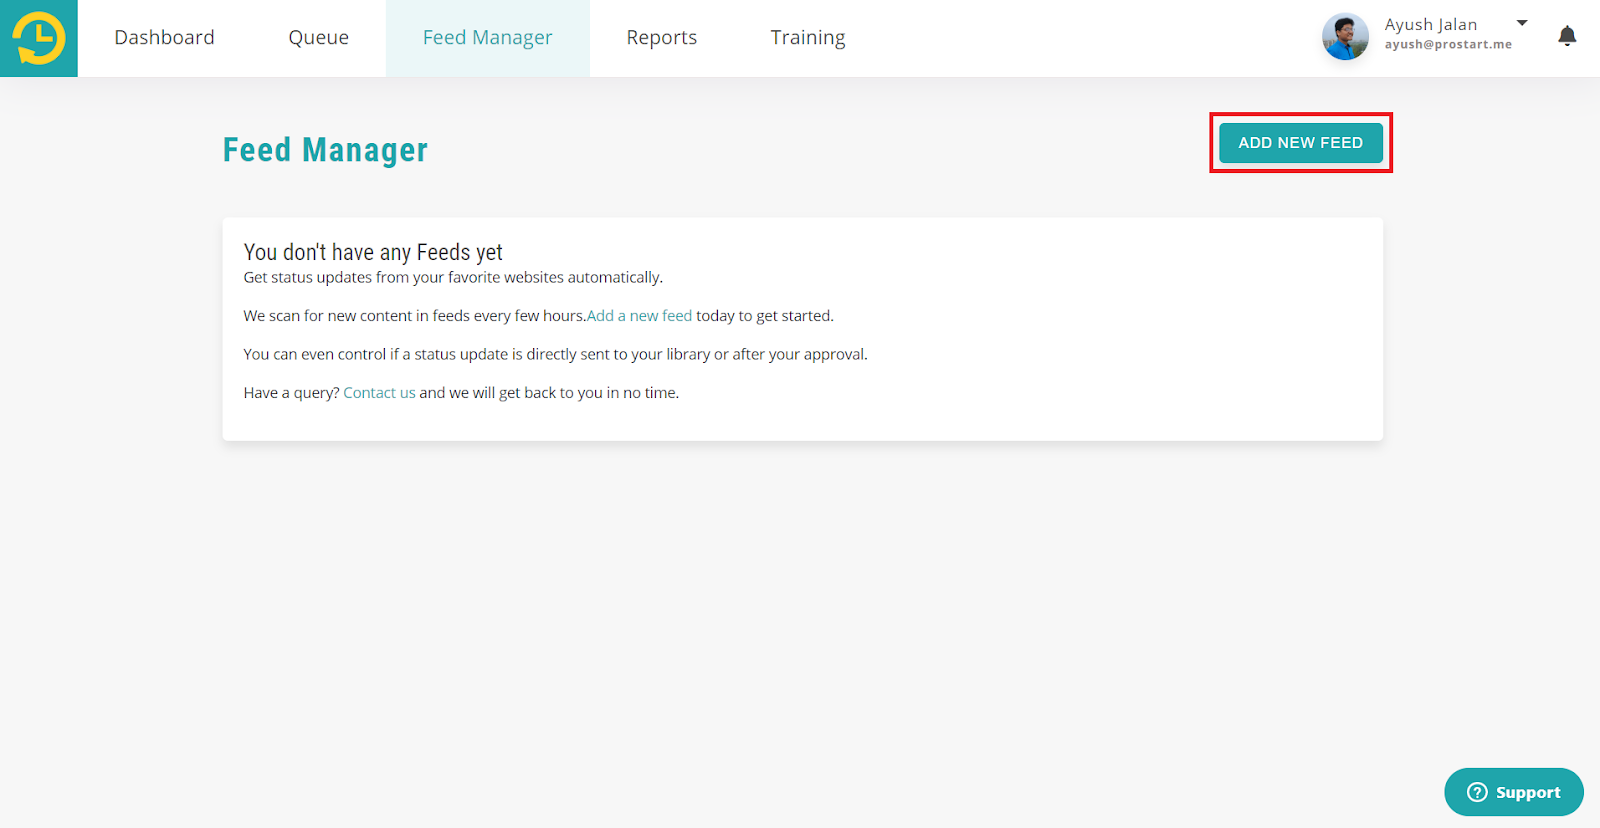 feed manager -  recurpost - social media scheduler